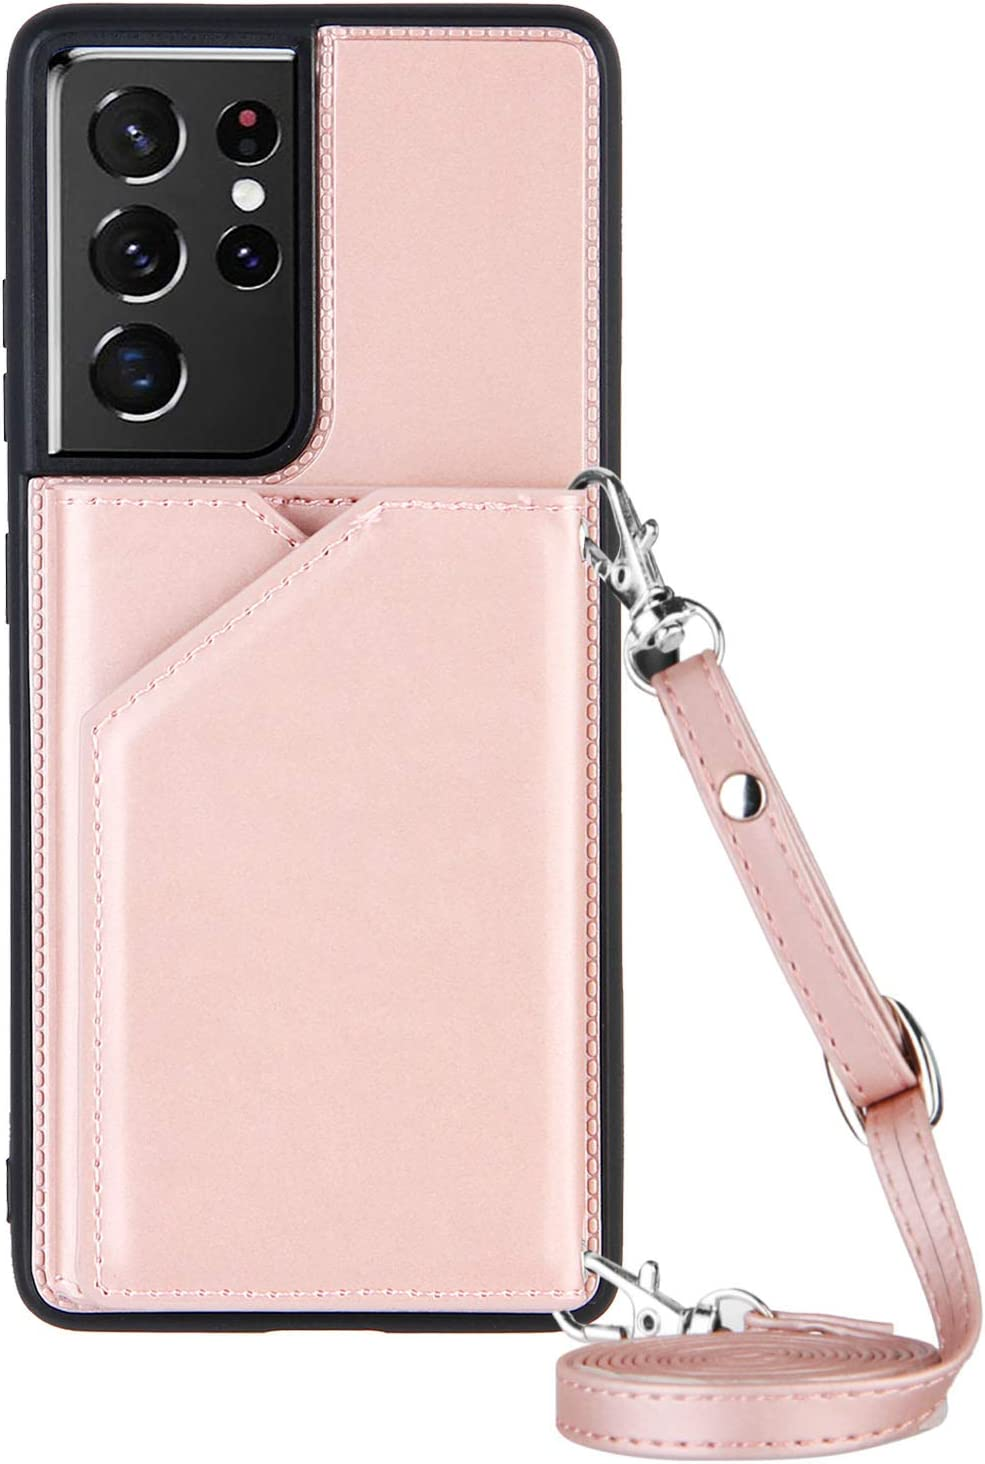 Galaxy S21 Ultra Case for Samsung S21 Ultra 5G Crossbody Case, Shockproof Stand TPU Bumper Cover, Lanyard Wallet Case 6.8